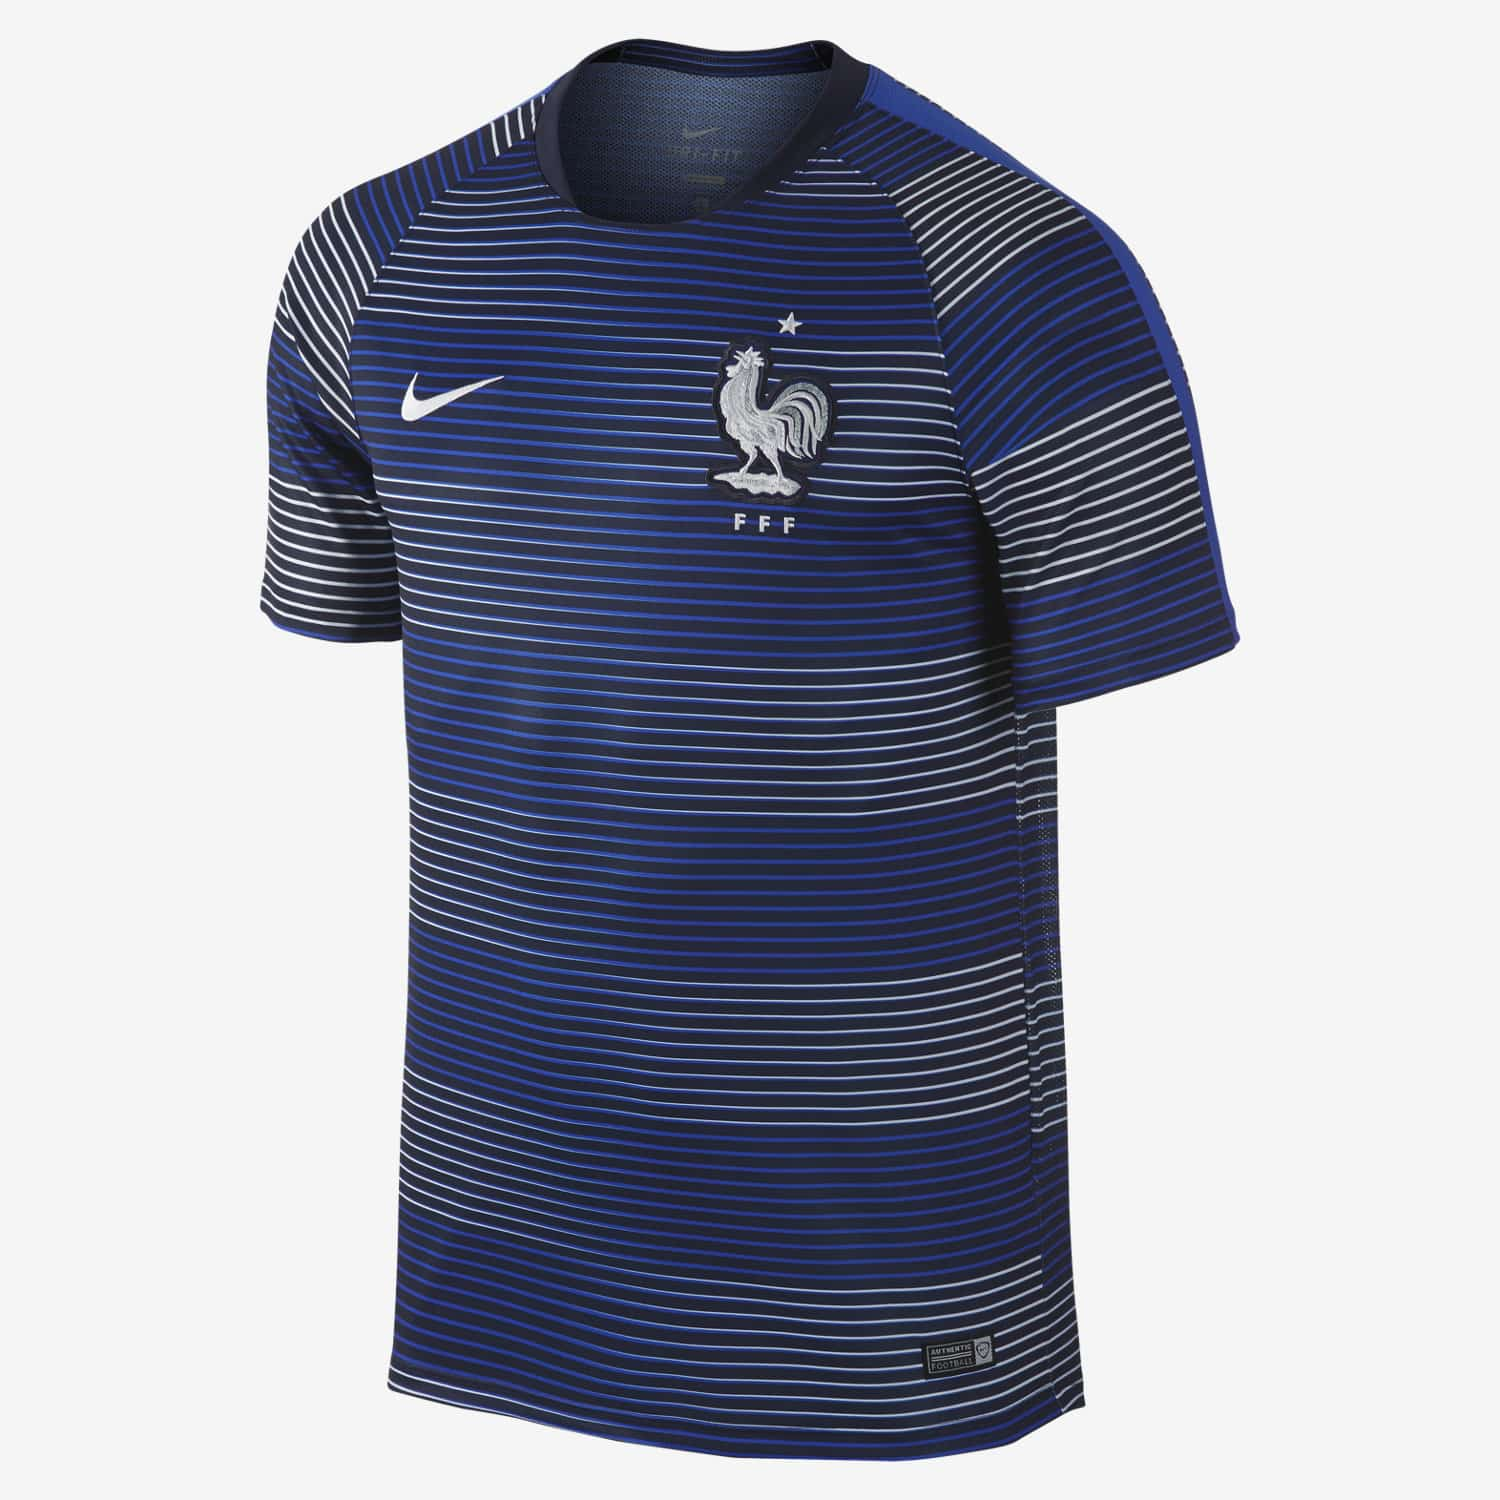 maillot-entrainement-nike-France-img2